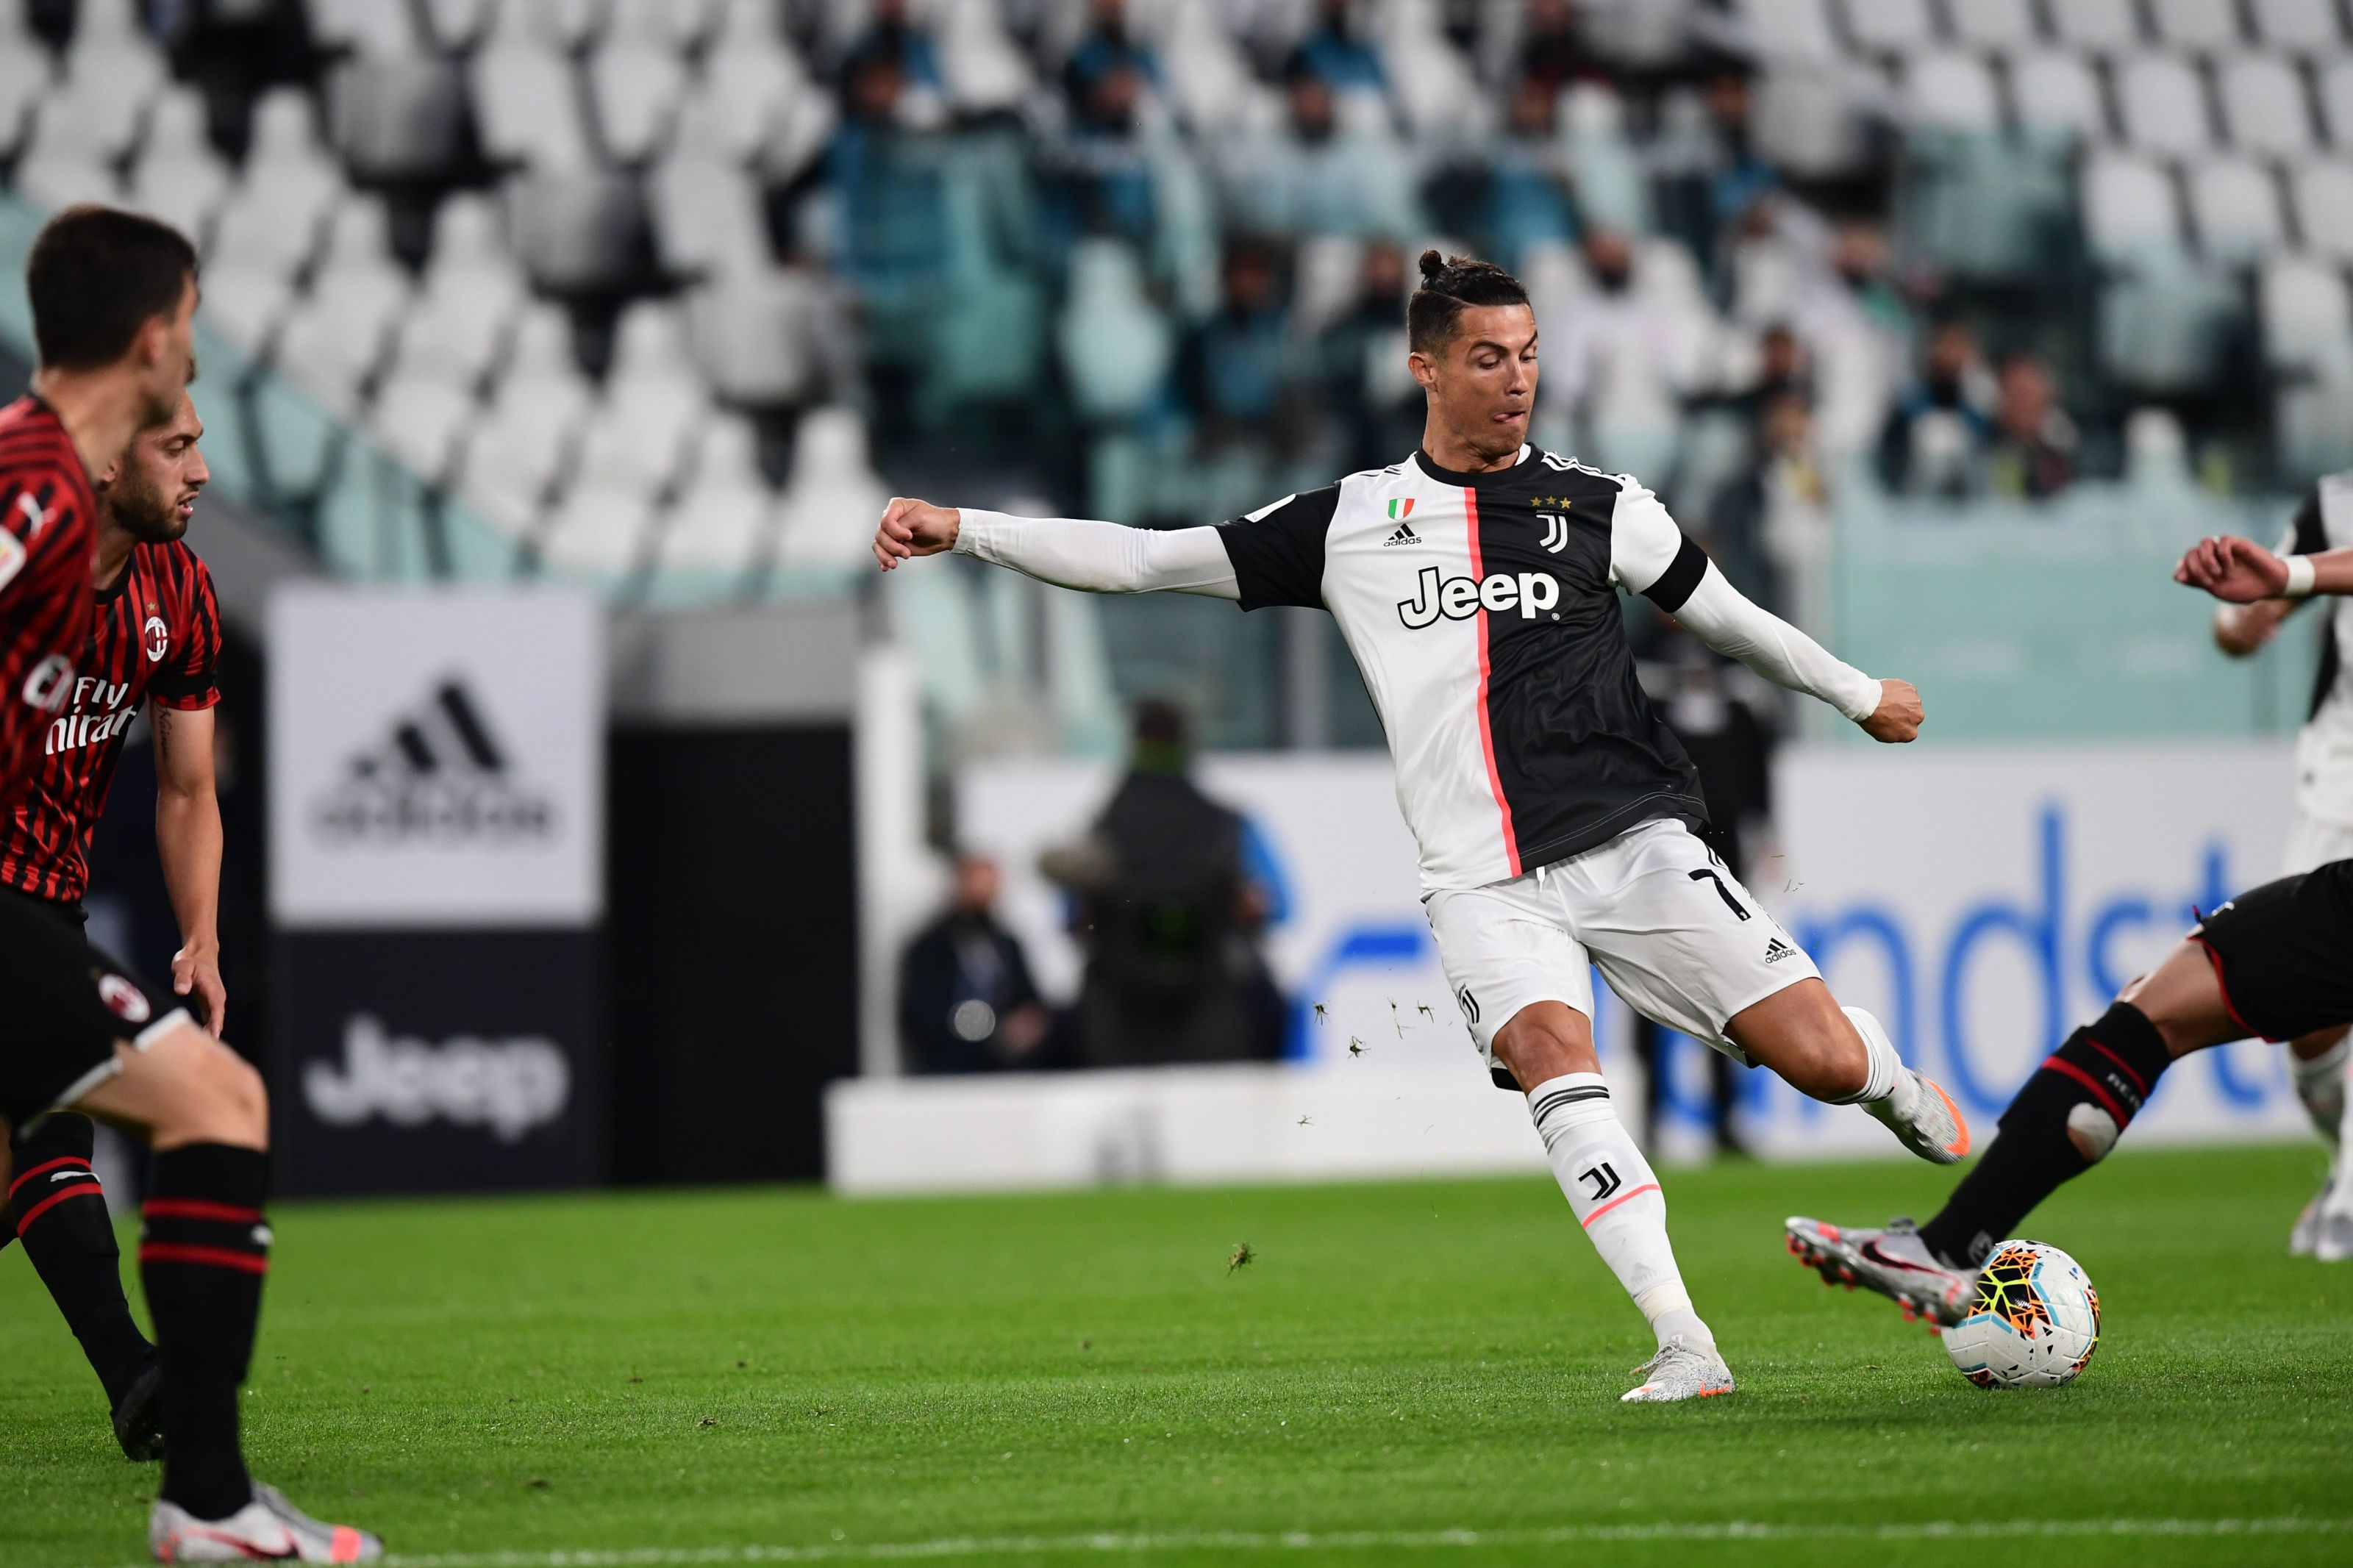 Juventus Vs Napoli Live Stream Watch Coppa Italia Final Online